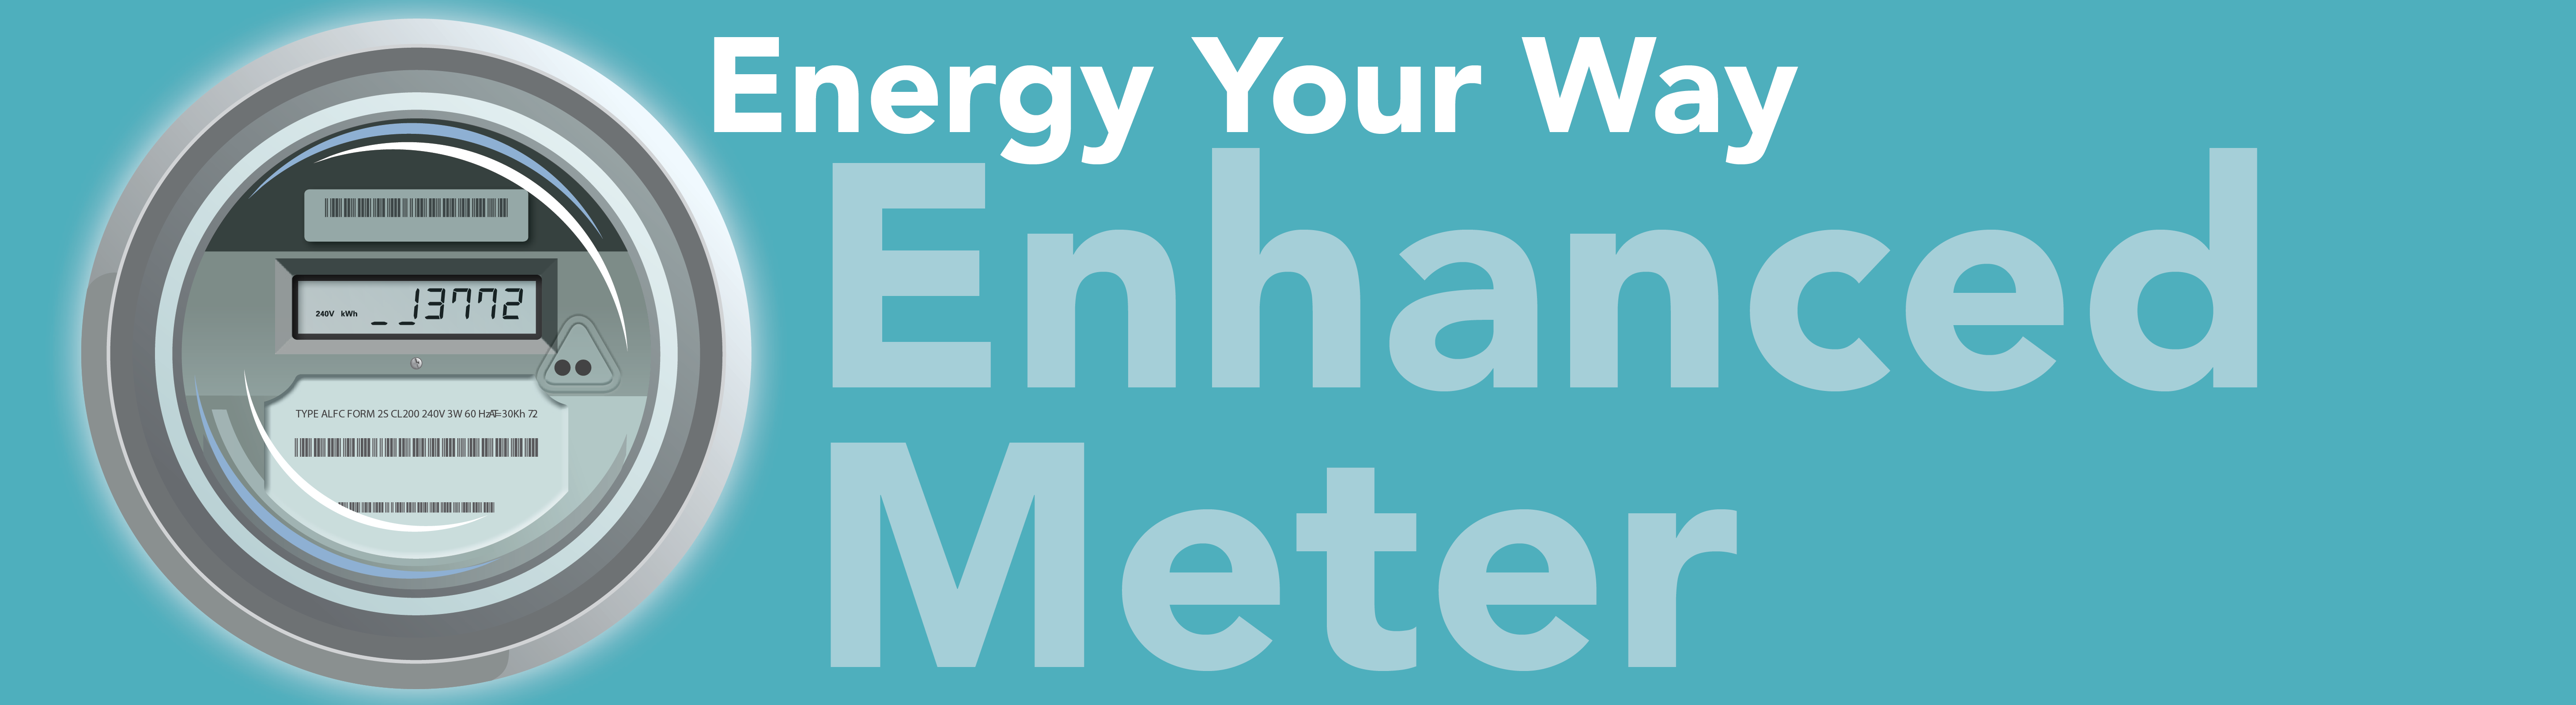 Energy Your Way - Enhanced Metering